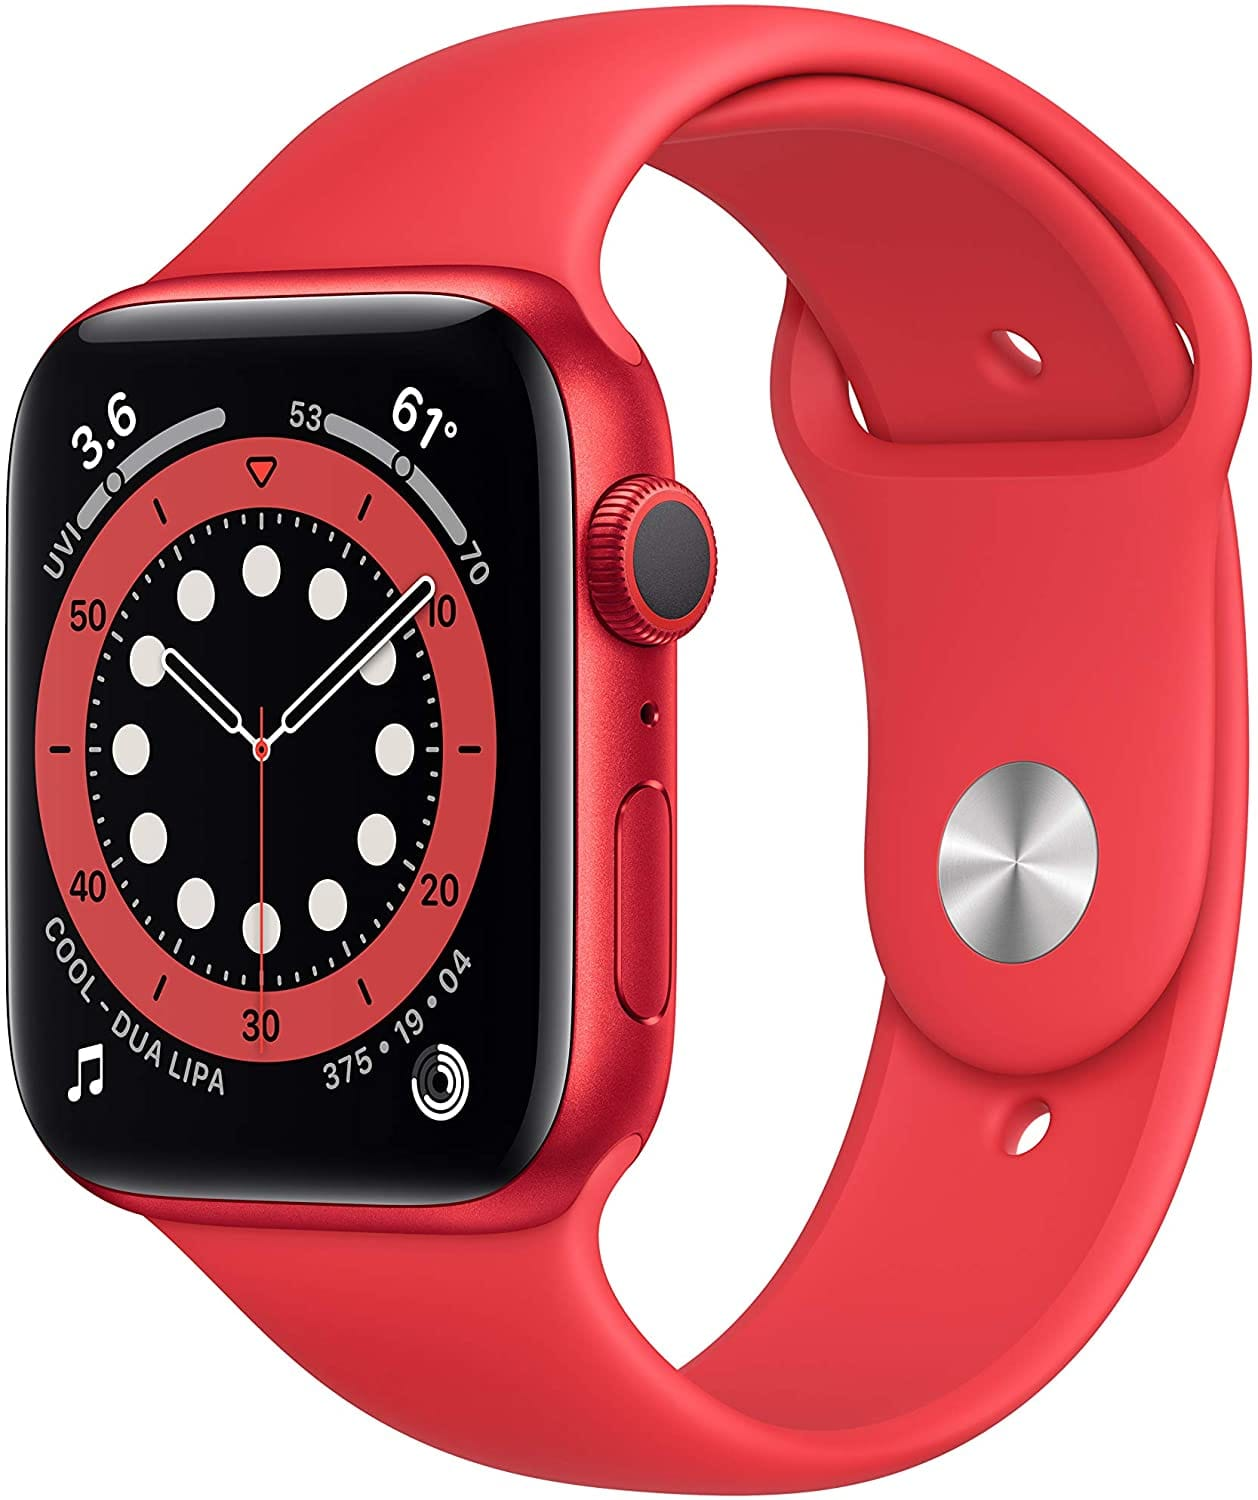 Apple watch Series 6 - 44mm GPS only - blue, red, gold $360